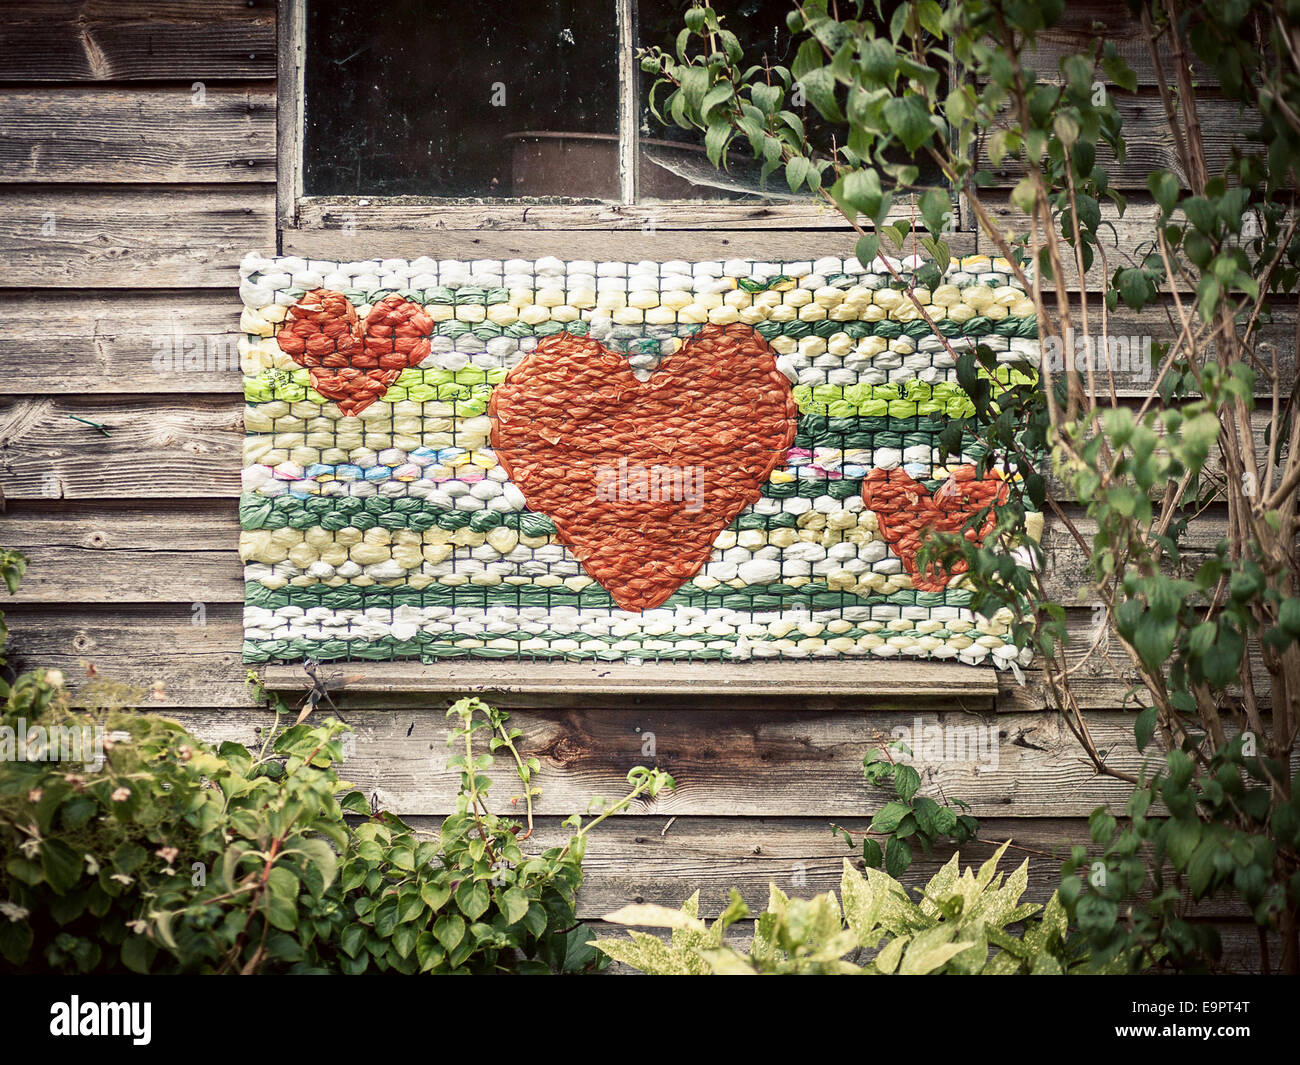 vintage hearts on the side of a shed - Stock Image